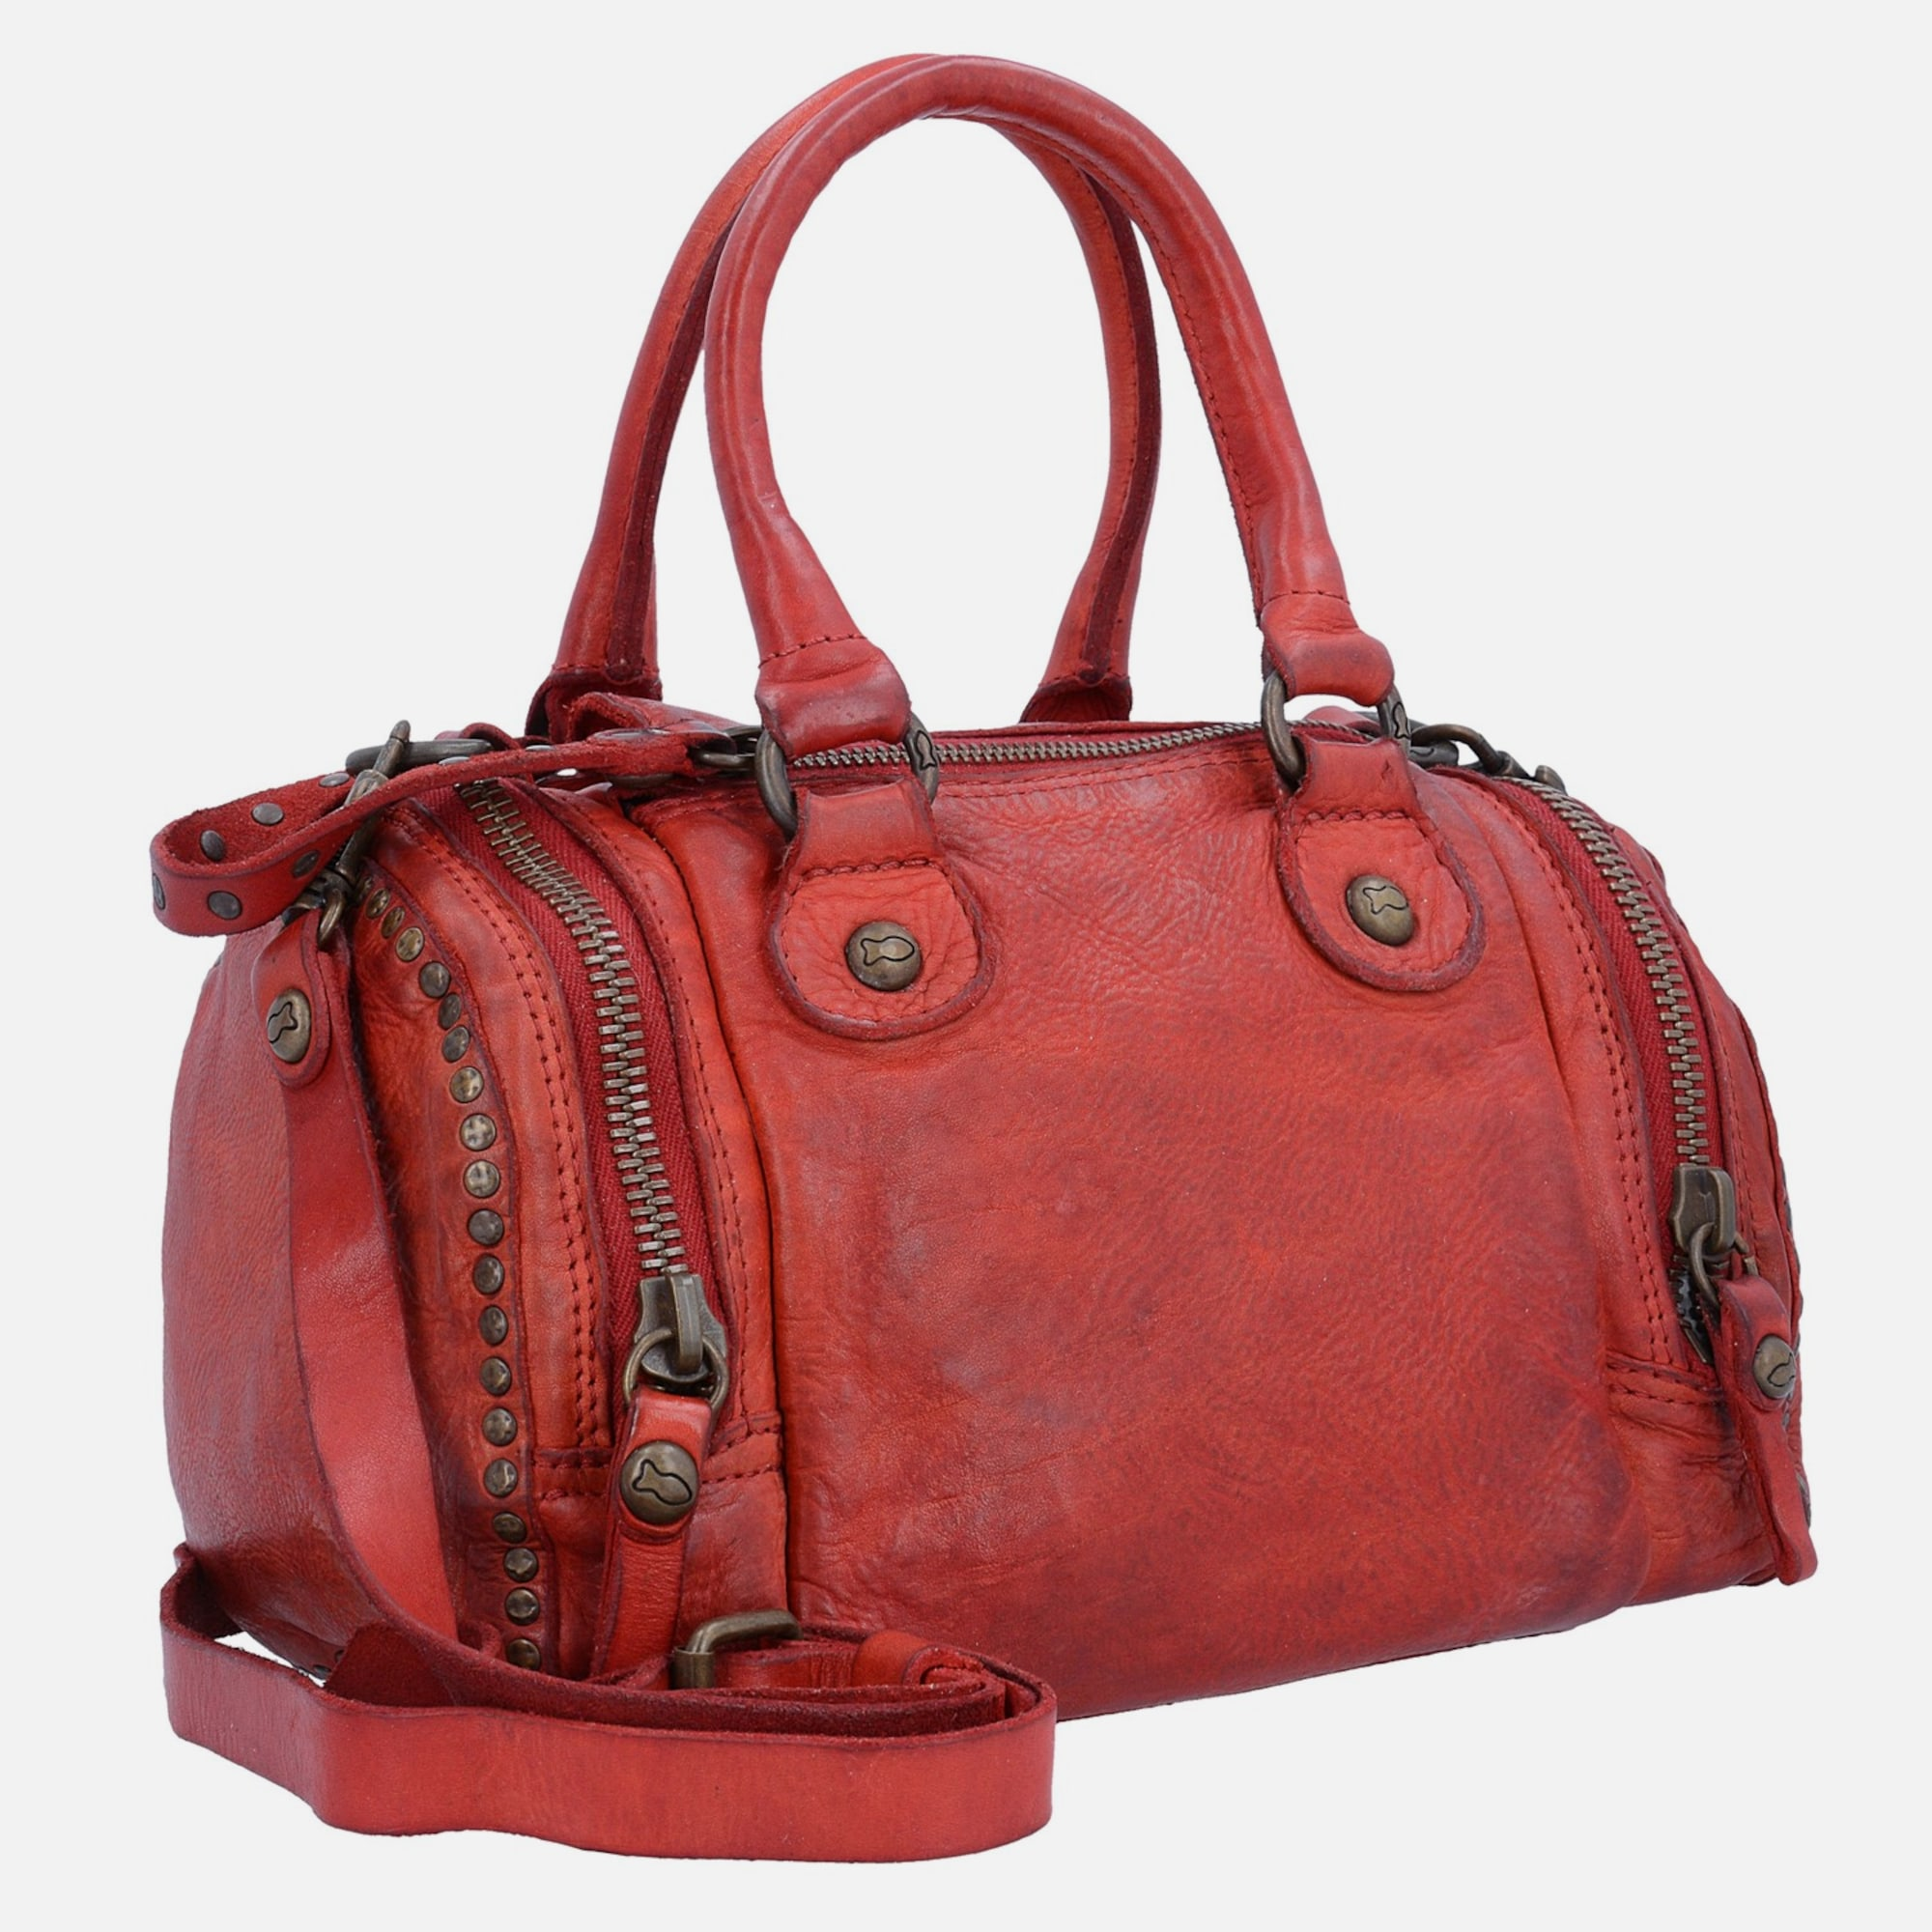 campomaggi bauletto mini bag handtasche leder 20 cm in rot about you. Black Bedroom Furniture Sets. Home Design Ideas